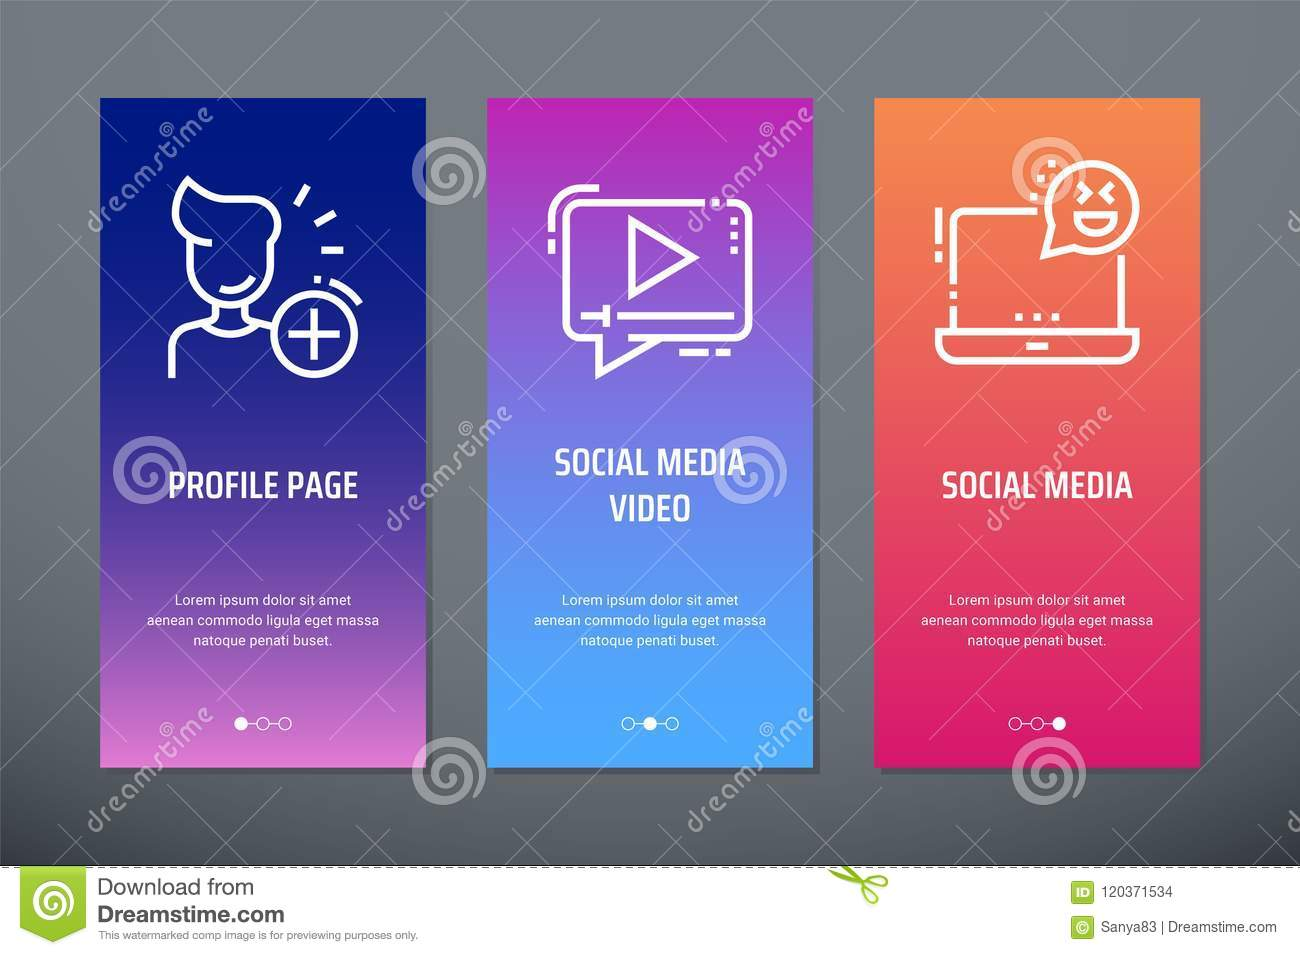 Profile Page Social Media Video Social Media Vertical Cards With